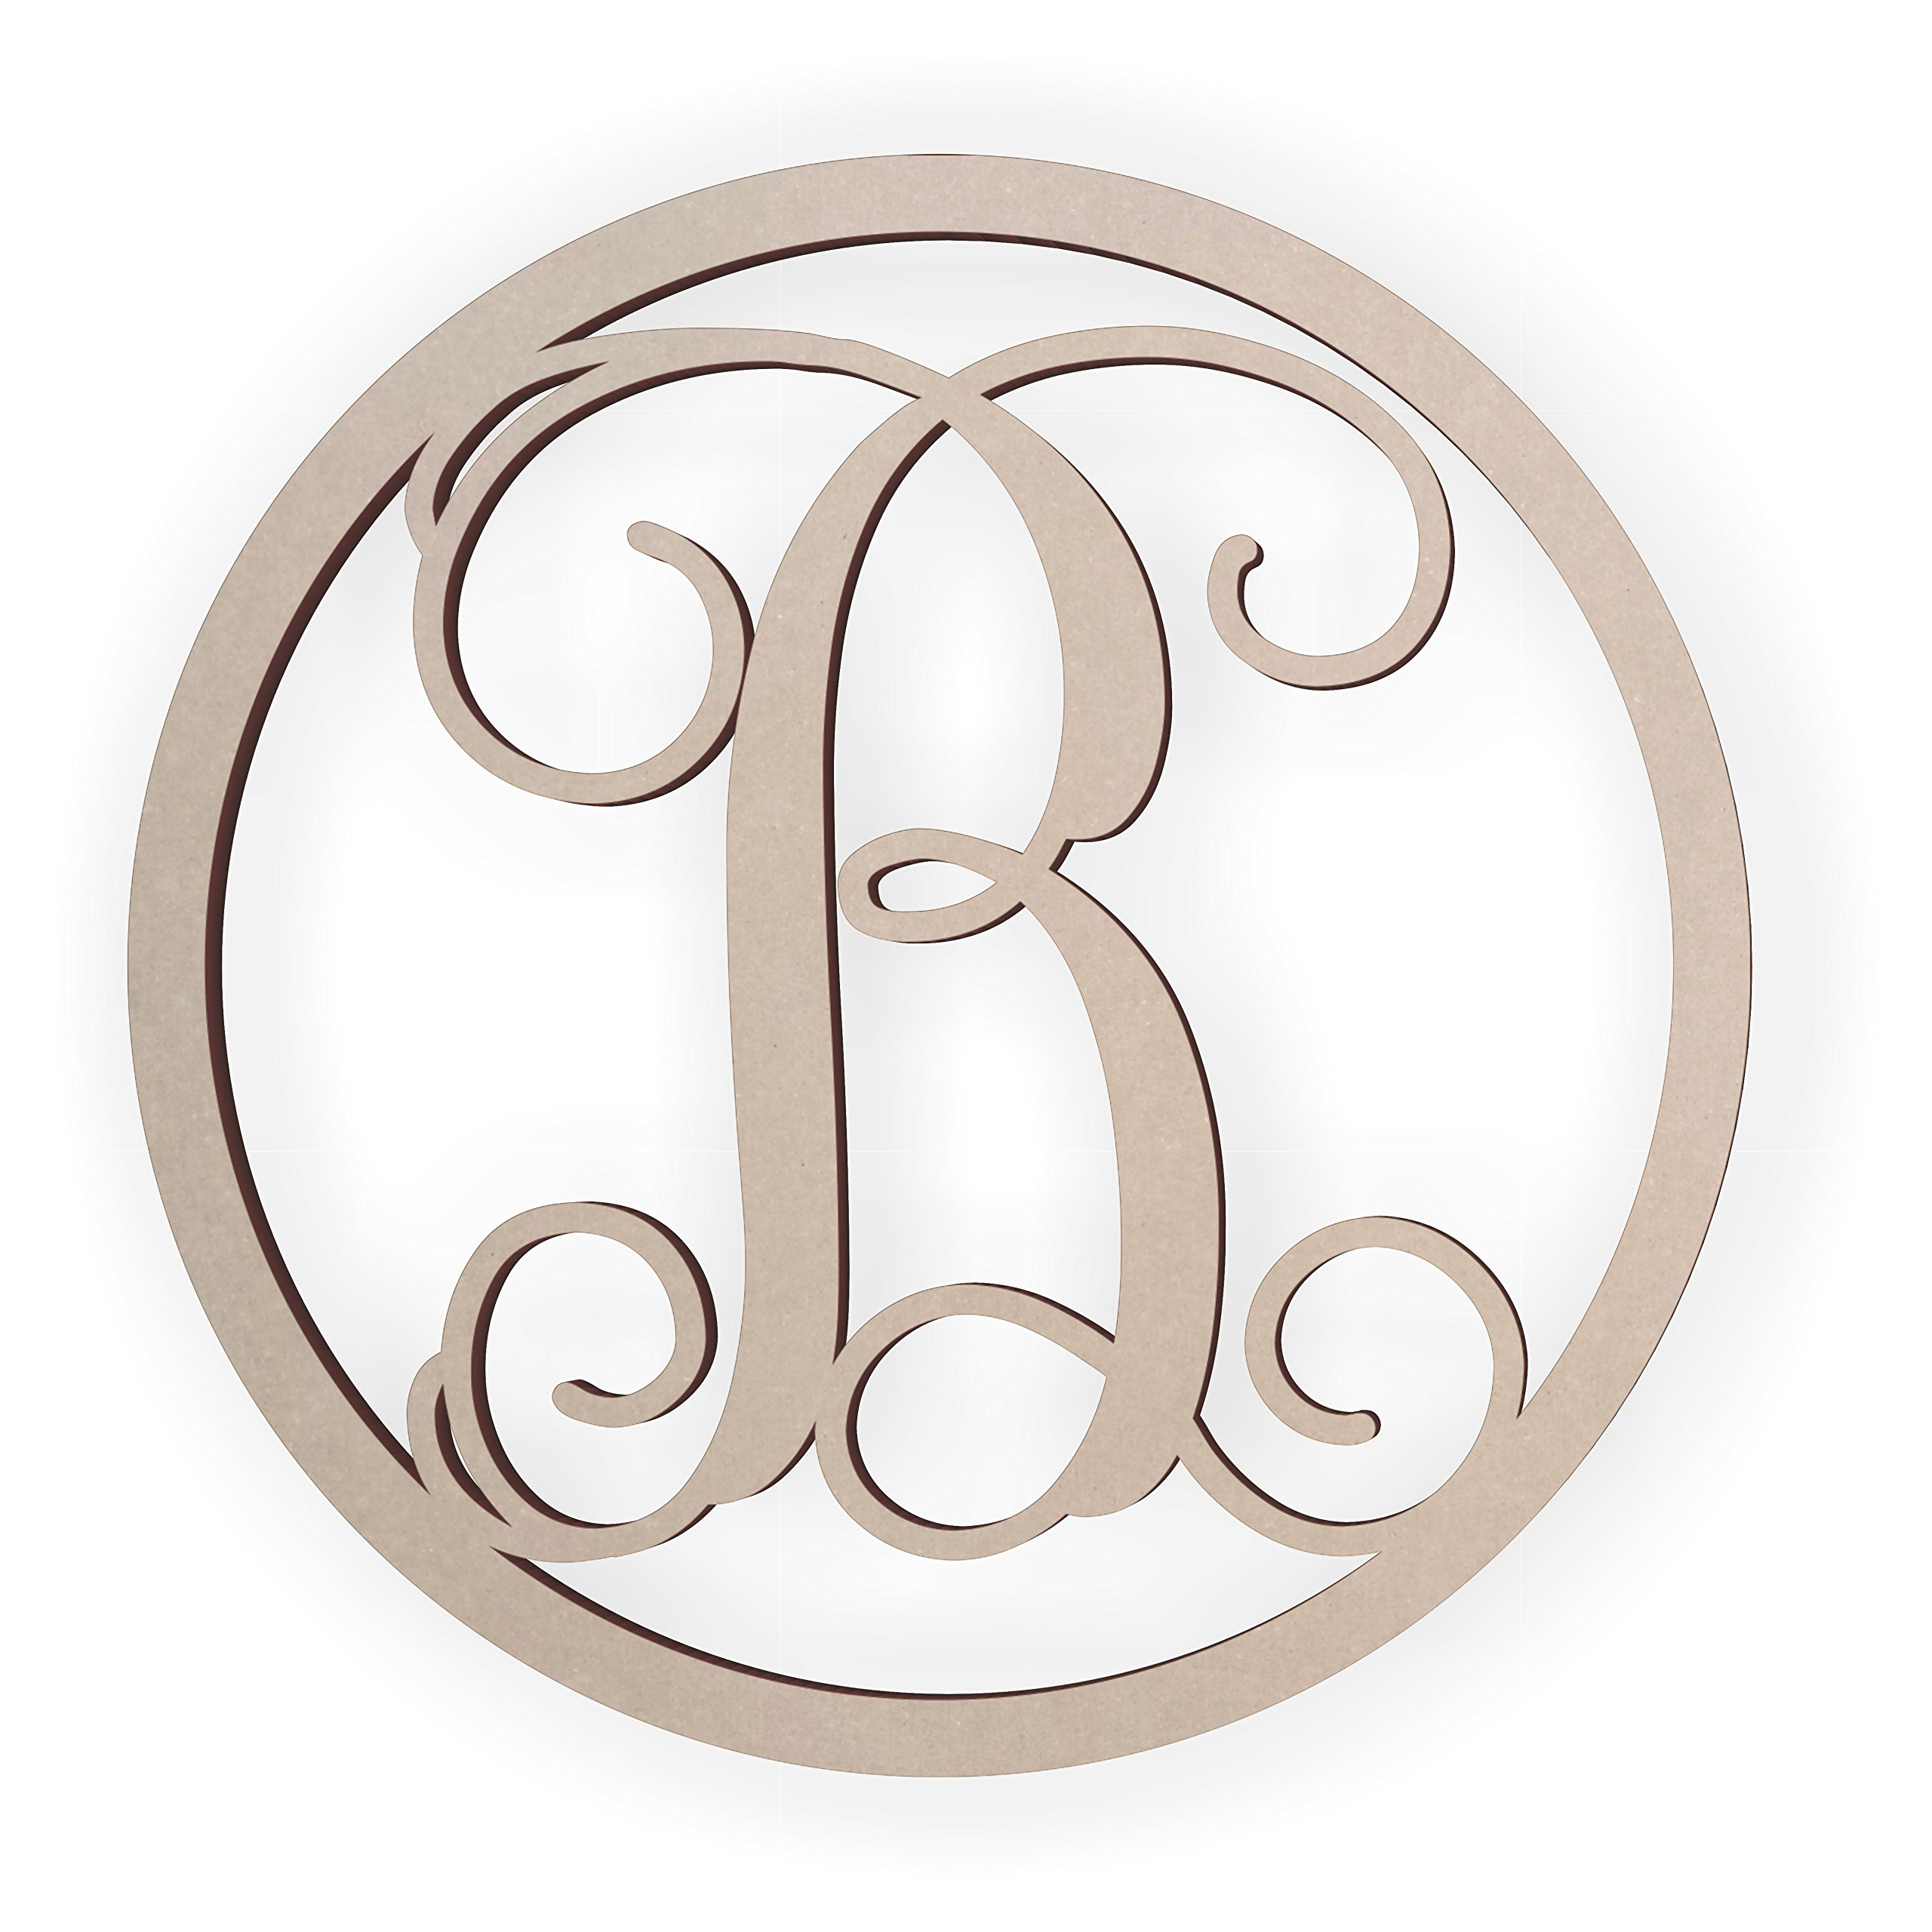 Jess and Jessica Wooden Letter B, Wooden Monogram Wall Hanging, Large Wooden Letters, Cursive Wood Letter